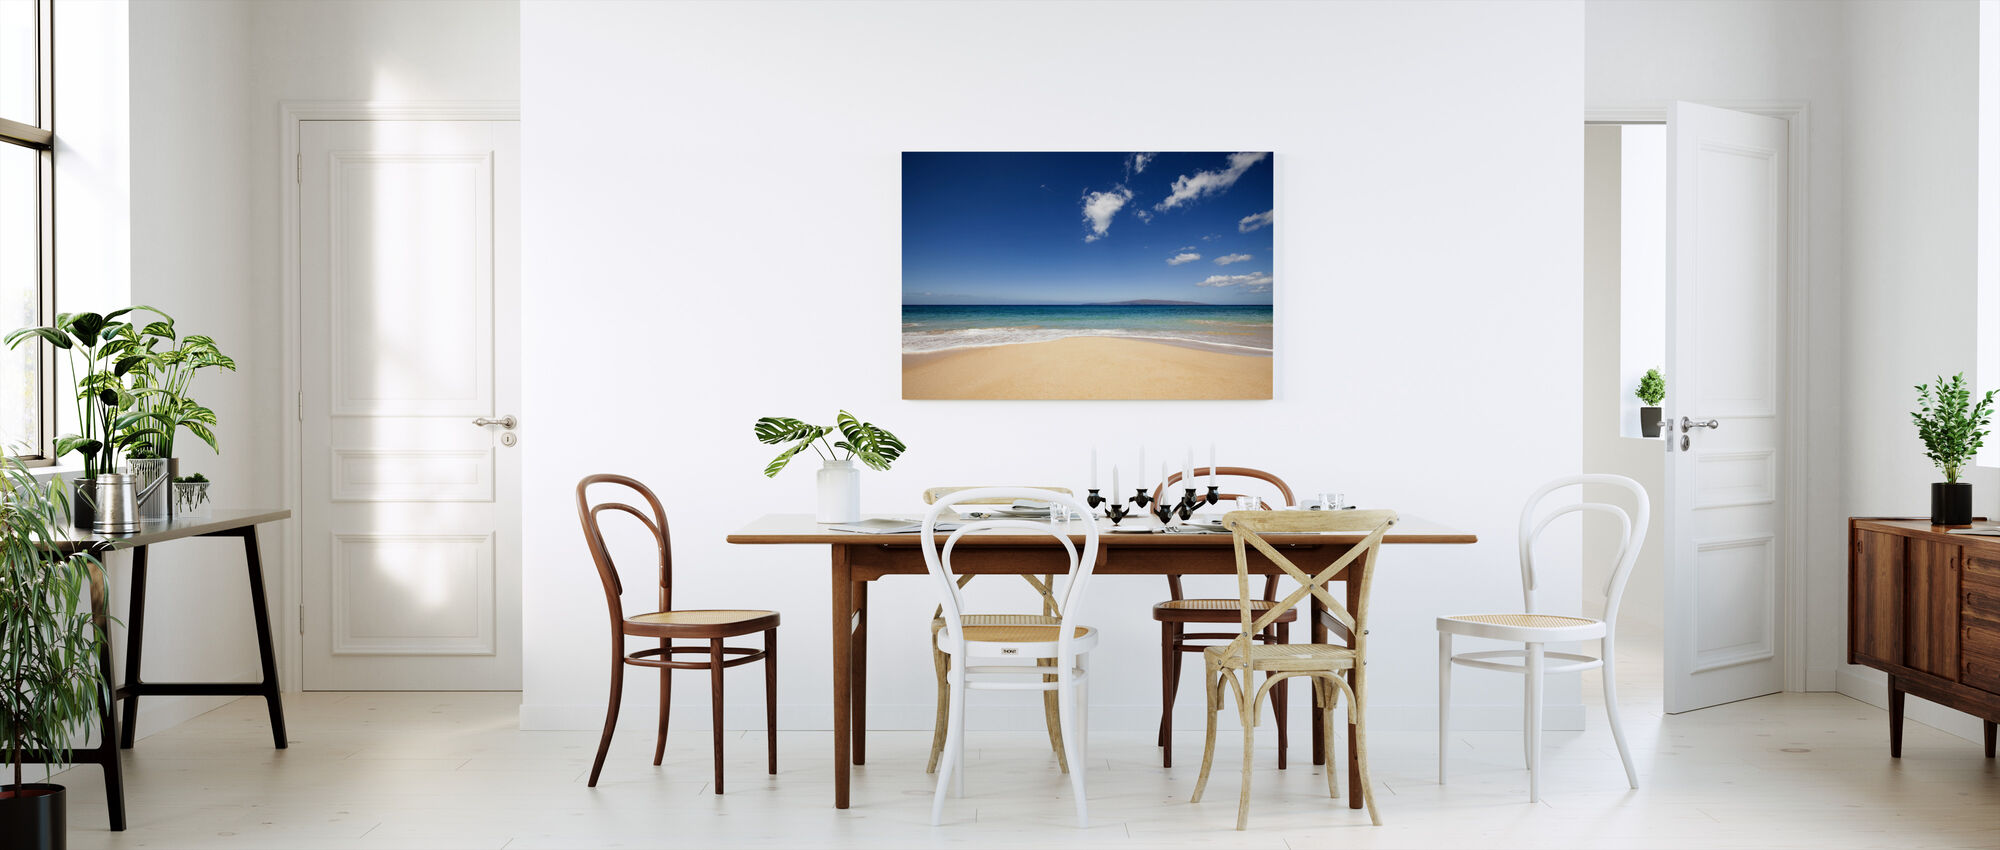 Blue Noon at the Beach - Canvas print - Kitchen